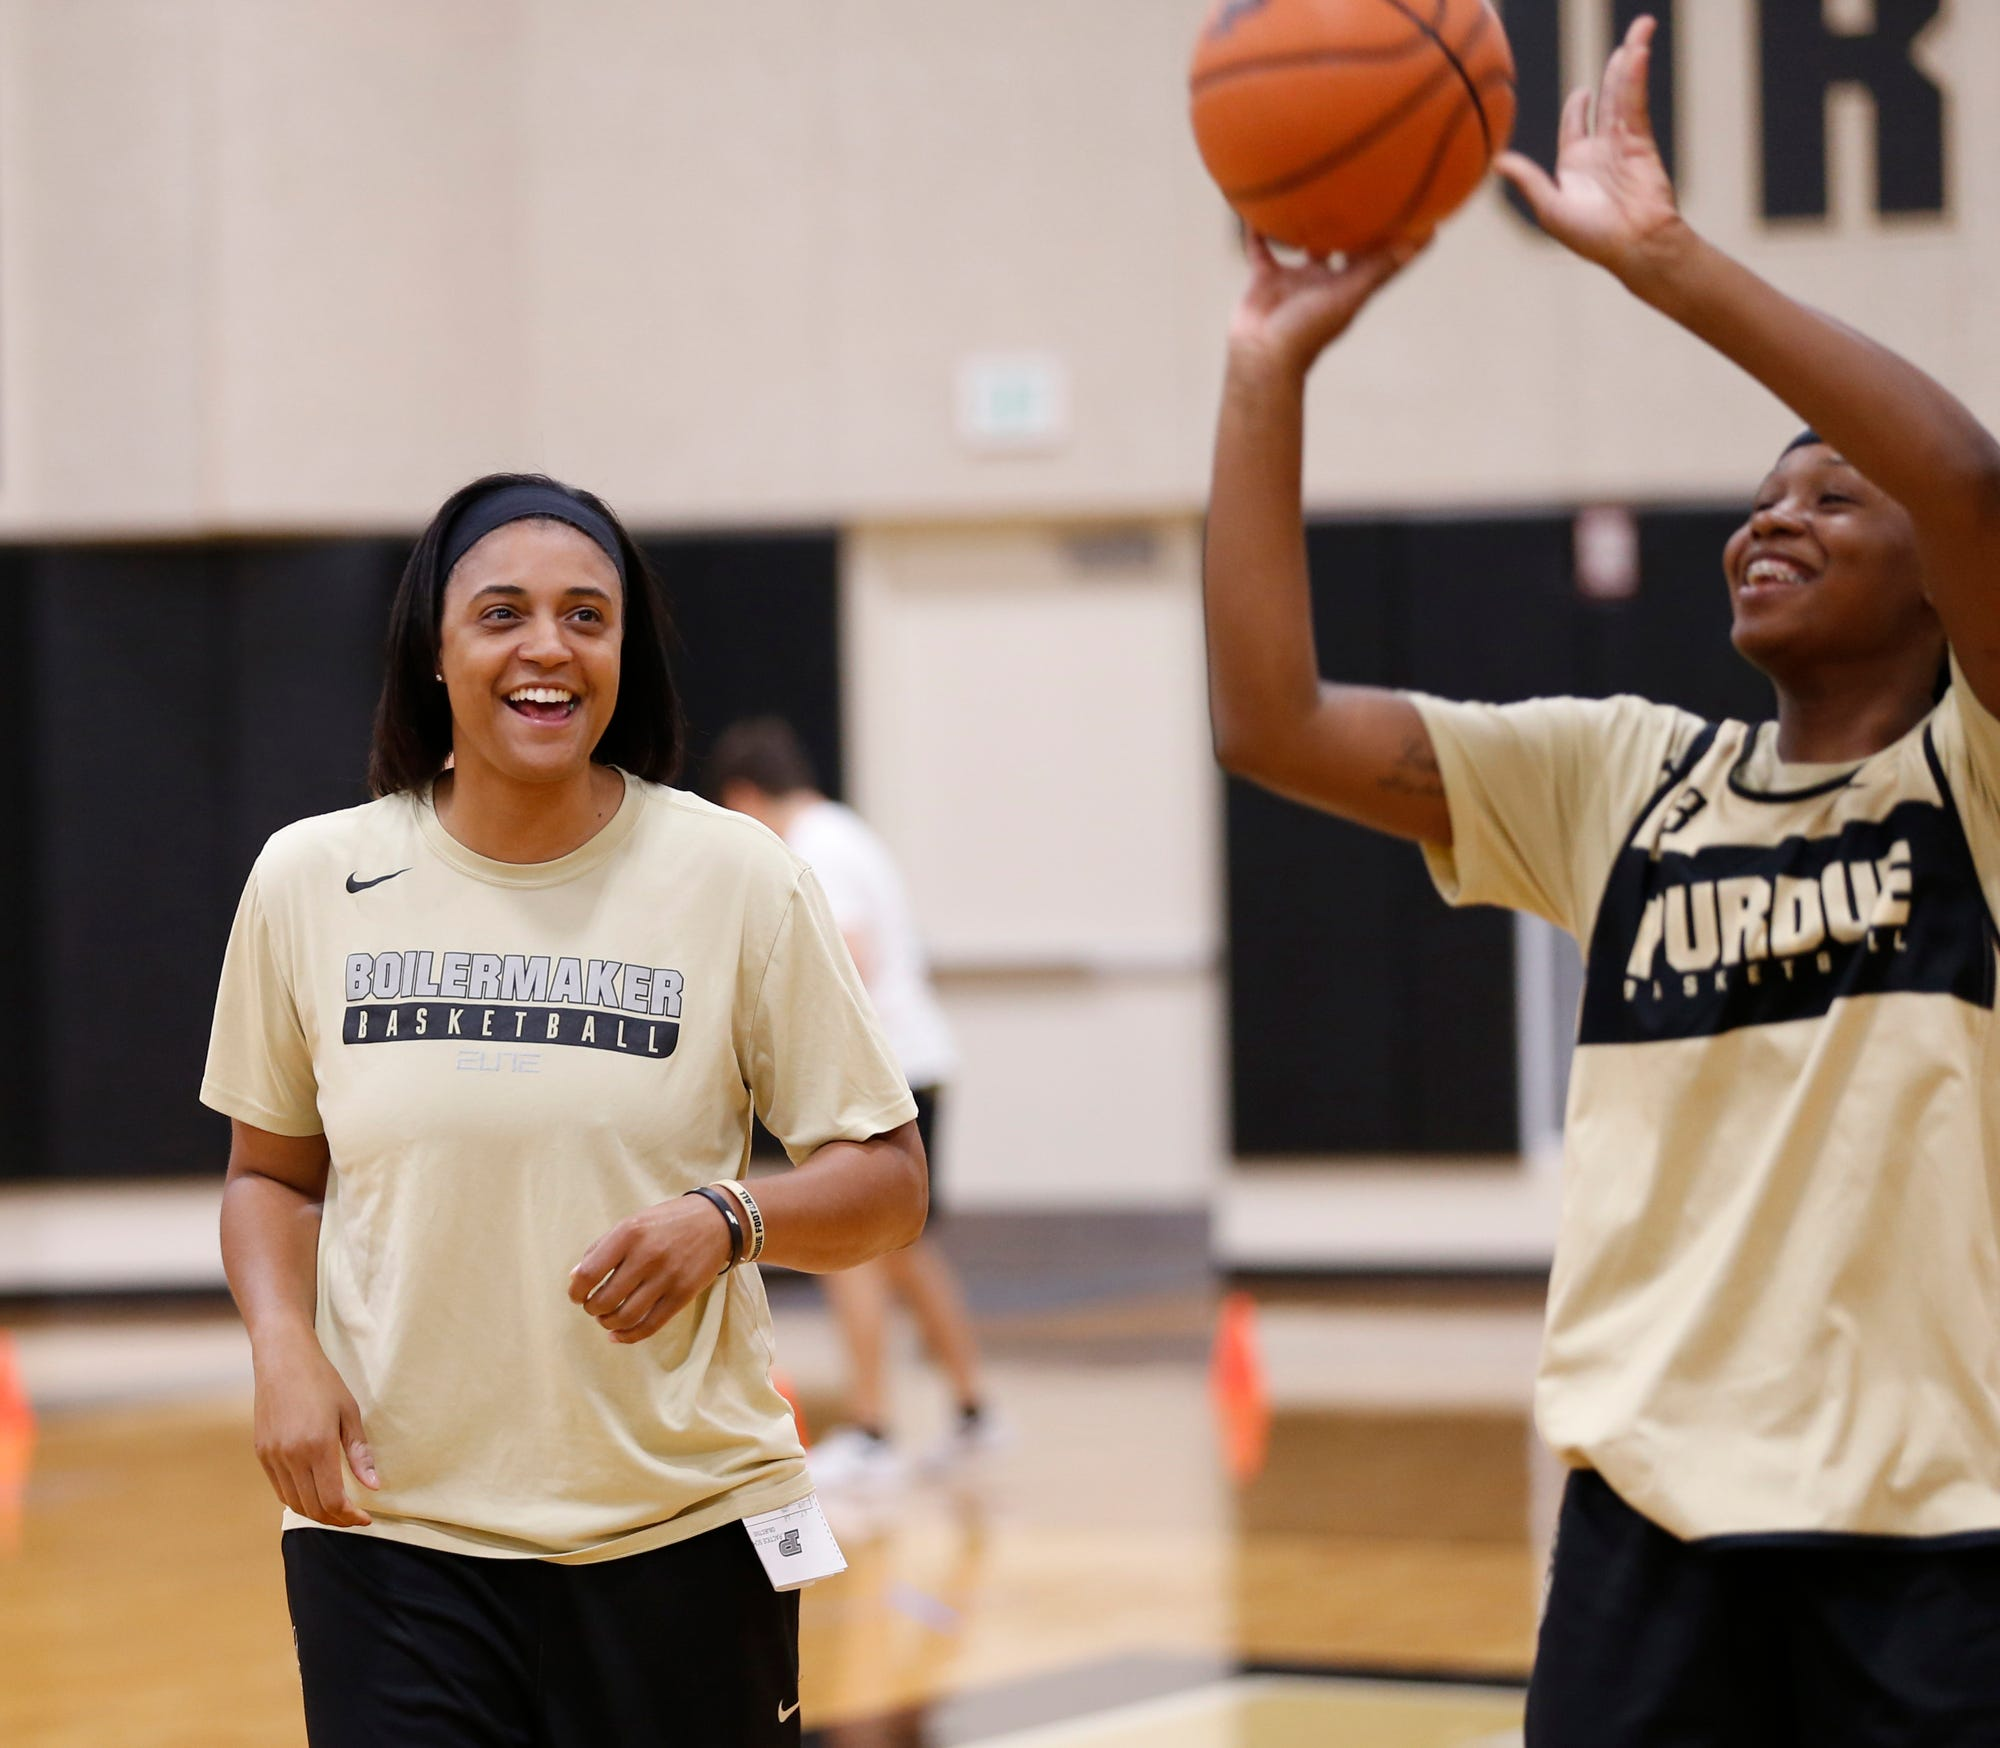 Assistant coach Lindsay Wisdom-Hylton, left, has a laugh with Lyndsey Whilby at Purdue women's basketball practice Wednesday, September 26, 2018, at Cardinal Court in Mackey Arena.